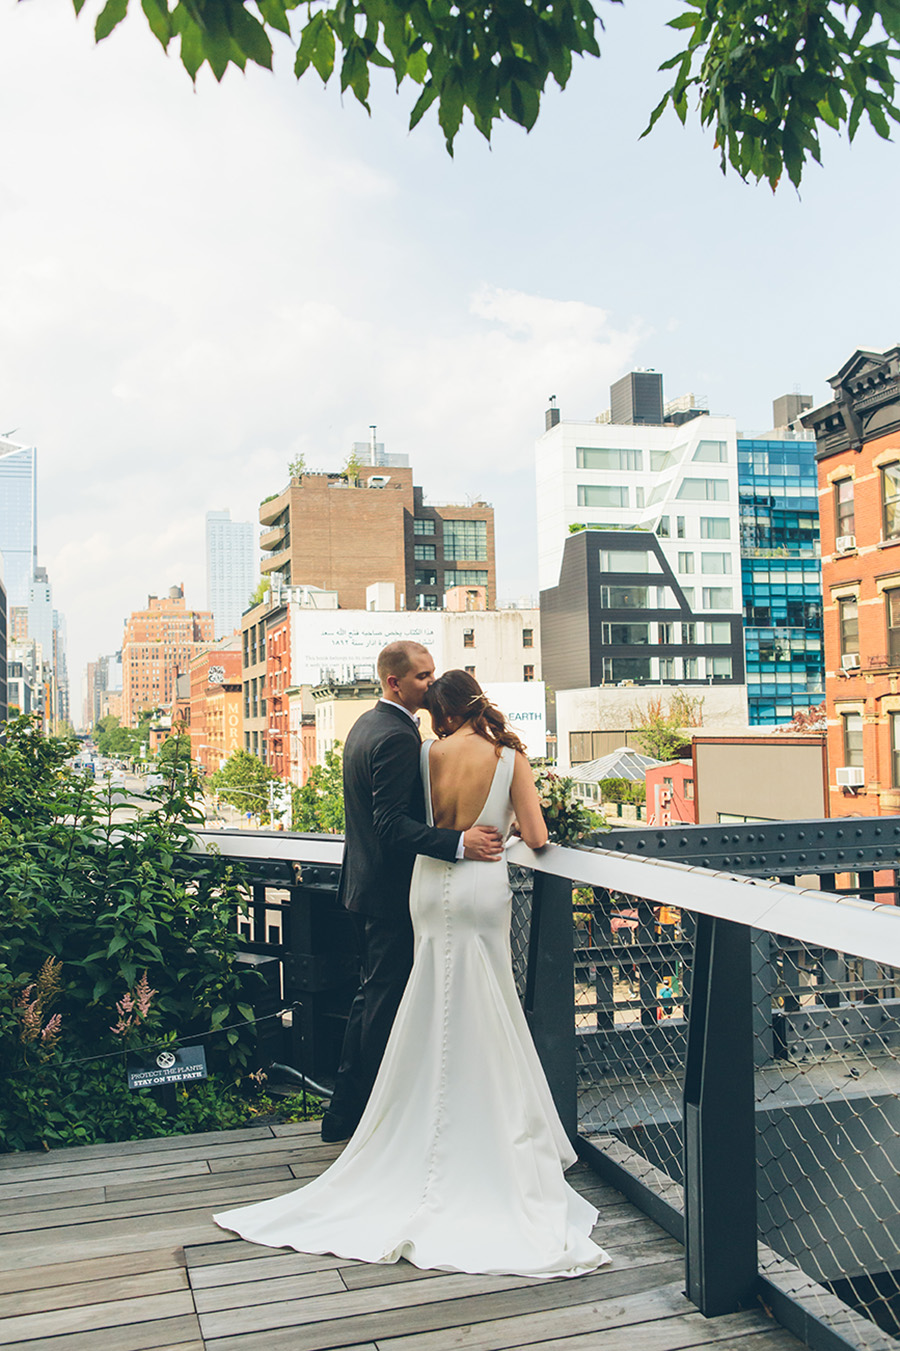 NEW-YORK-CITY-WEDDING-PHOTOGRAPHER-CURRENT-CHELSEAPIERS-THE-HIGHLINE-DREAM-HOTELS-CHELSEA-MANHATTAN-BROOKLYN-WEDDING-PHOTOGRAPHY-0035.jpg